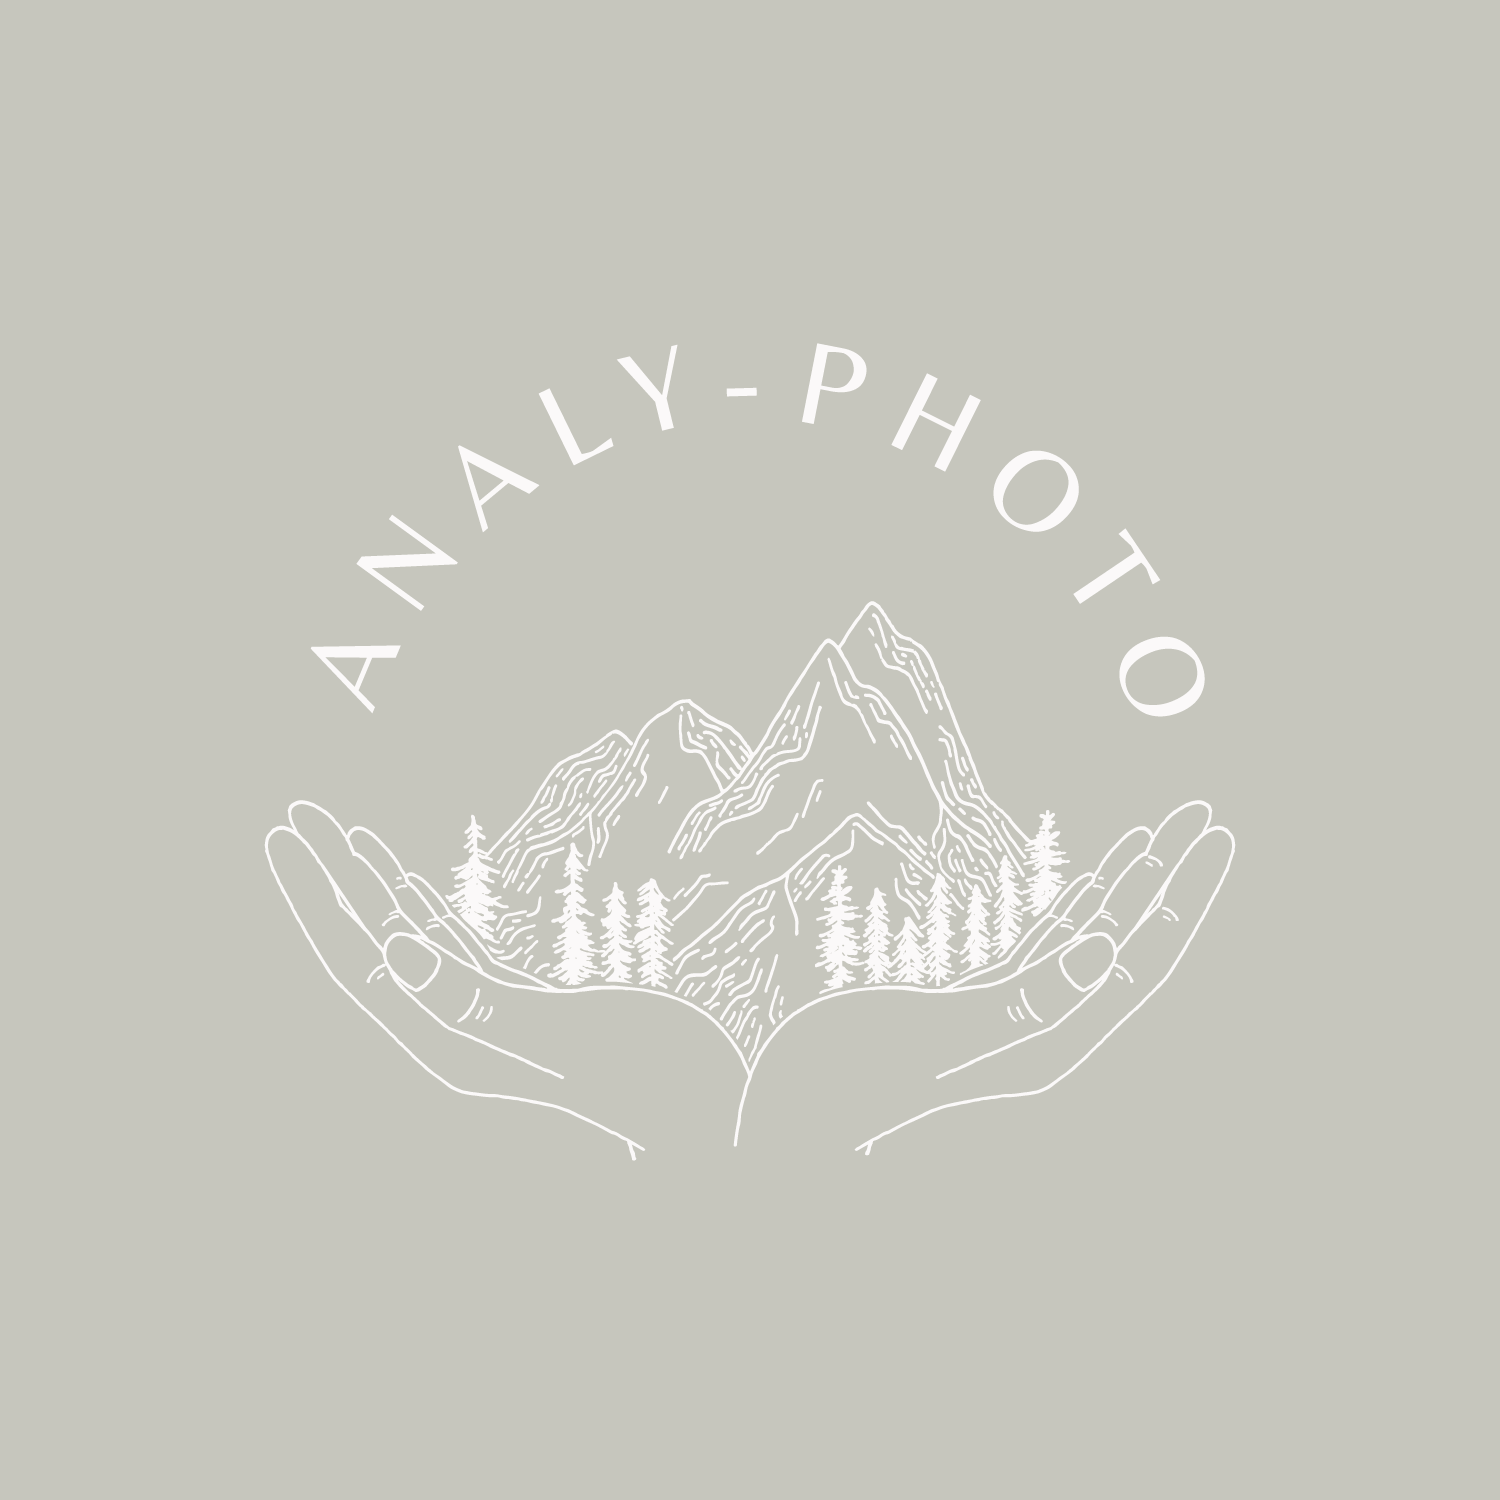 Analy Photo Logo & Branding design for small businesses by Bea & Bloom Creative Design Studio